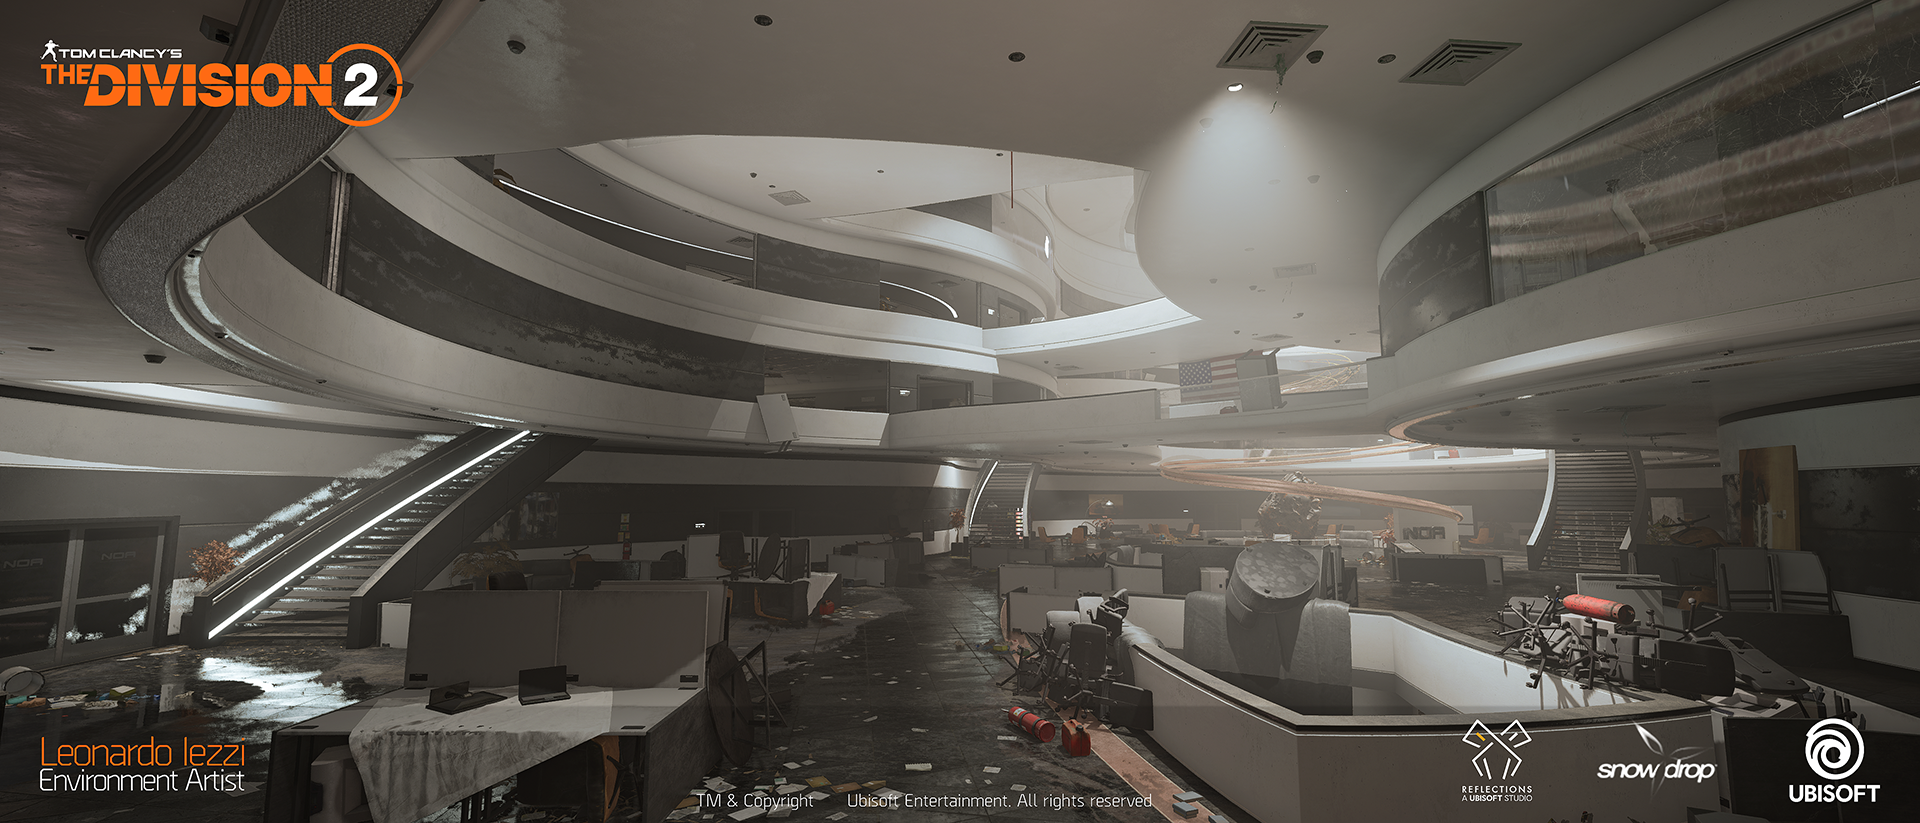 Leonardo_Iezzi_The_Division_2_Environment_Art_02_Atrium_018_wide